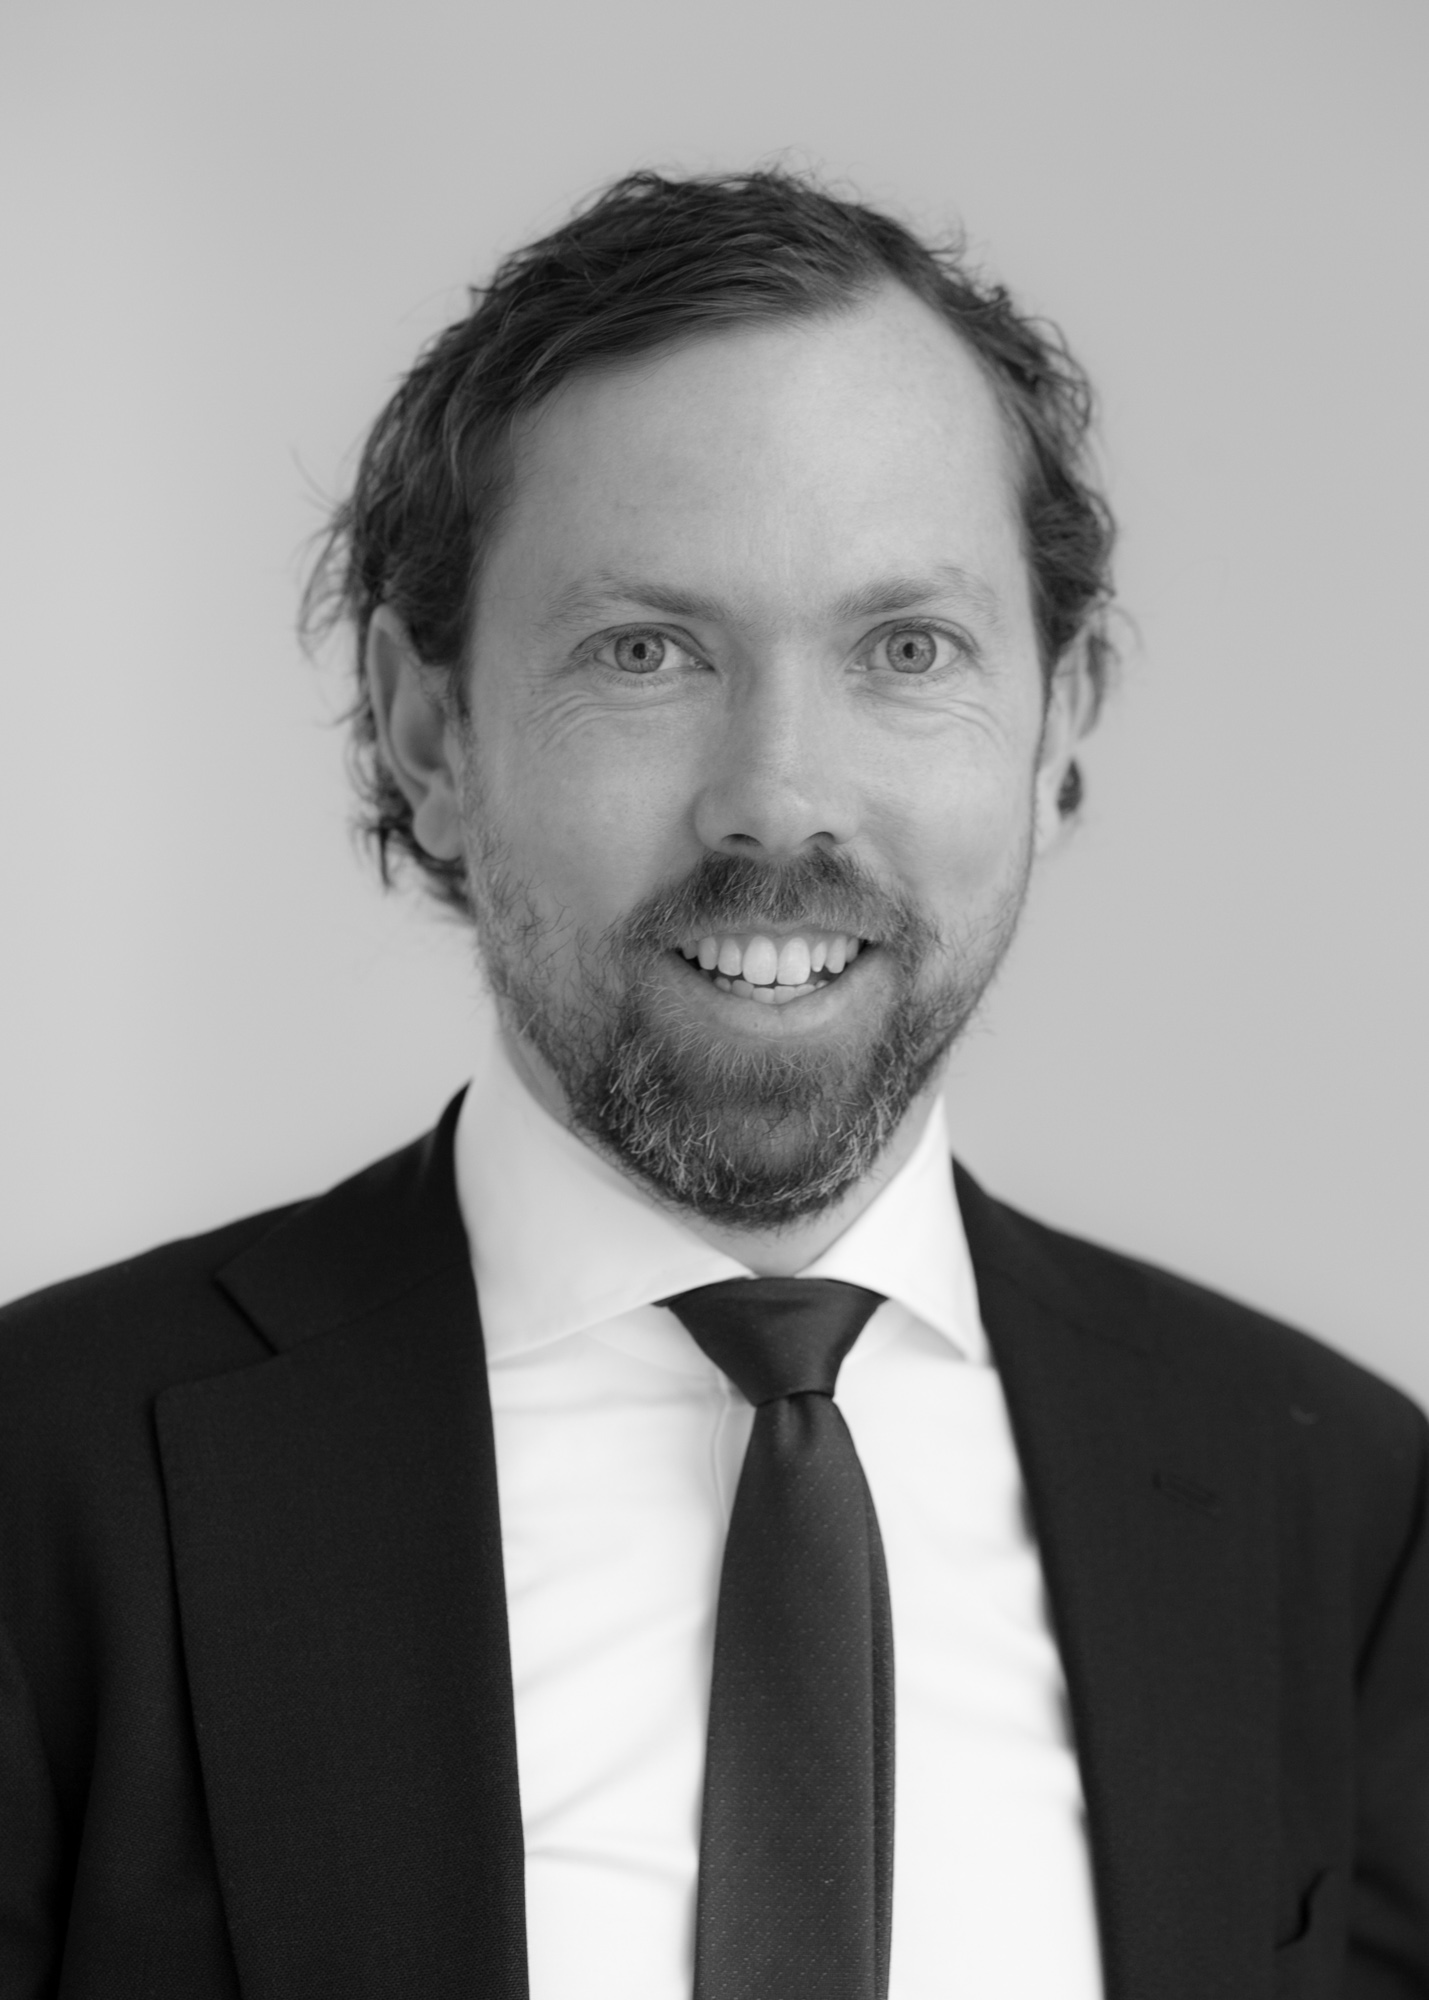 A black and white image of Tim Fitzpatrick, one of the financial advisers at Ethical Investment Services.